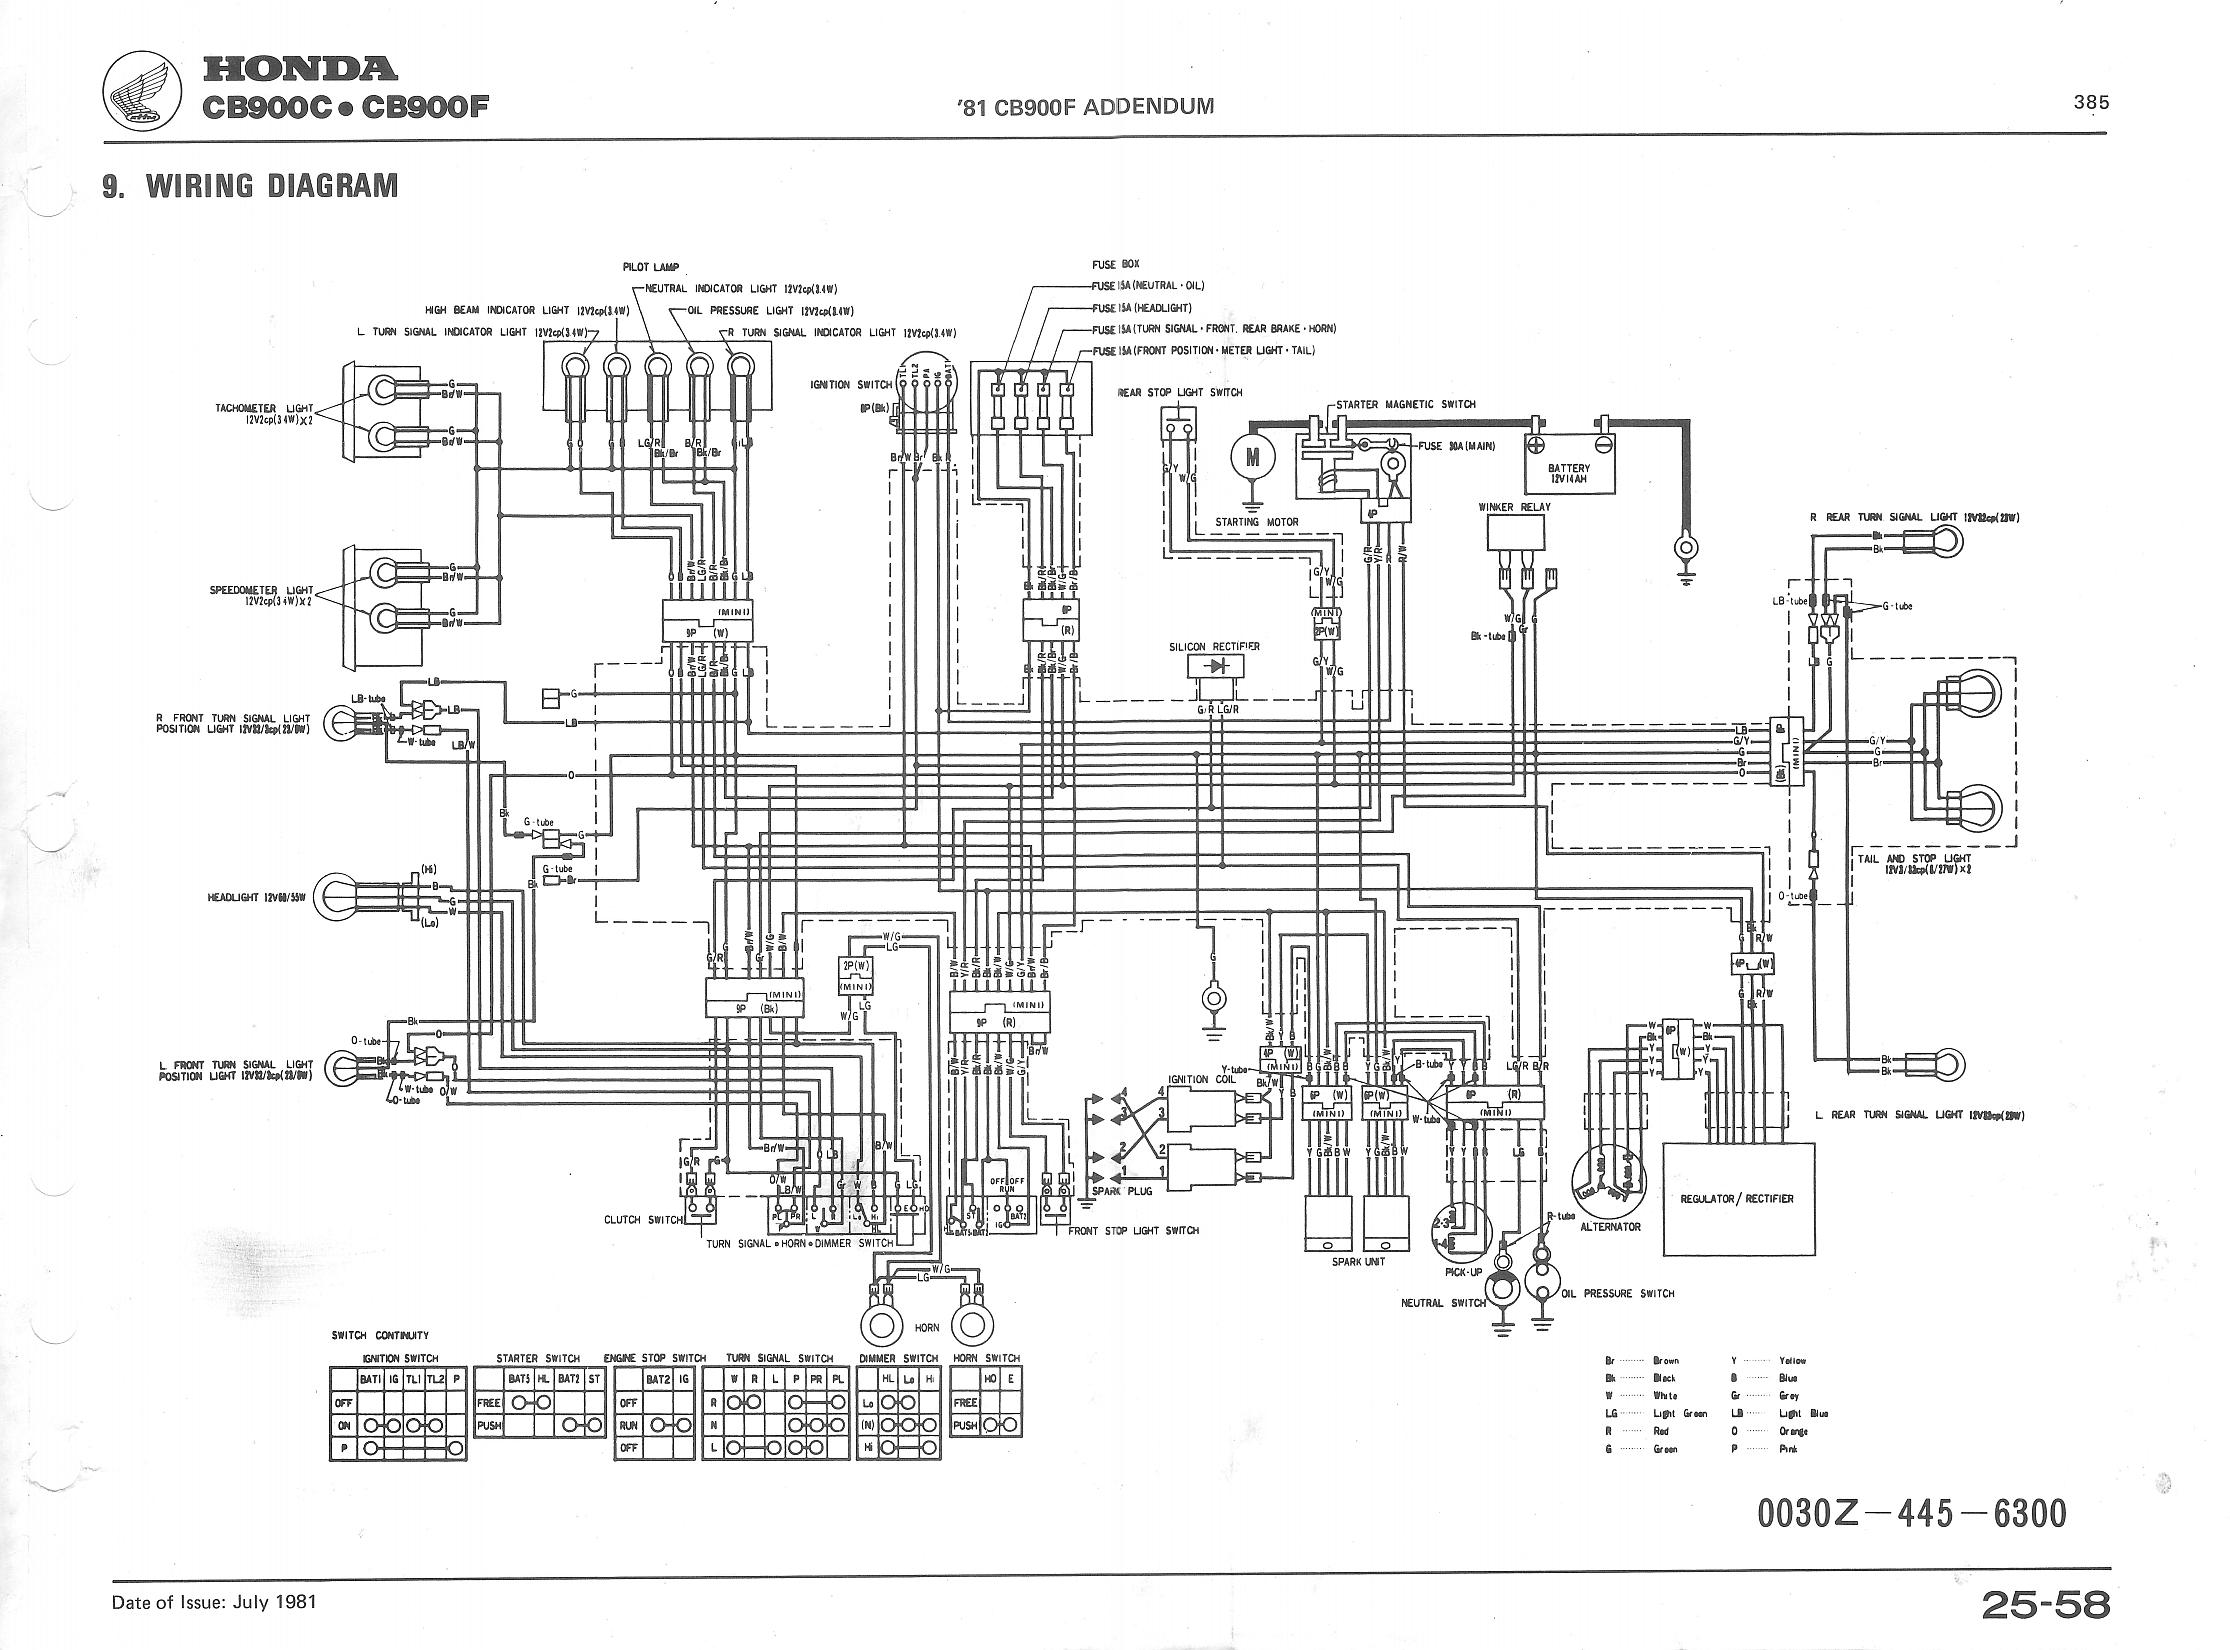 82 Honda Magna Wiring Diagram Auto Electrical